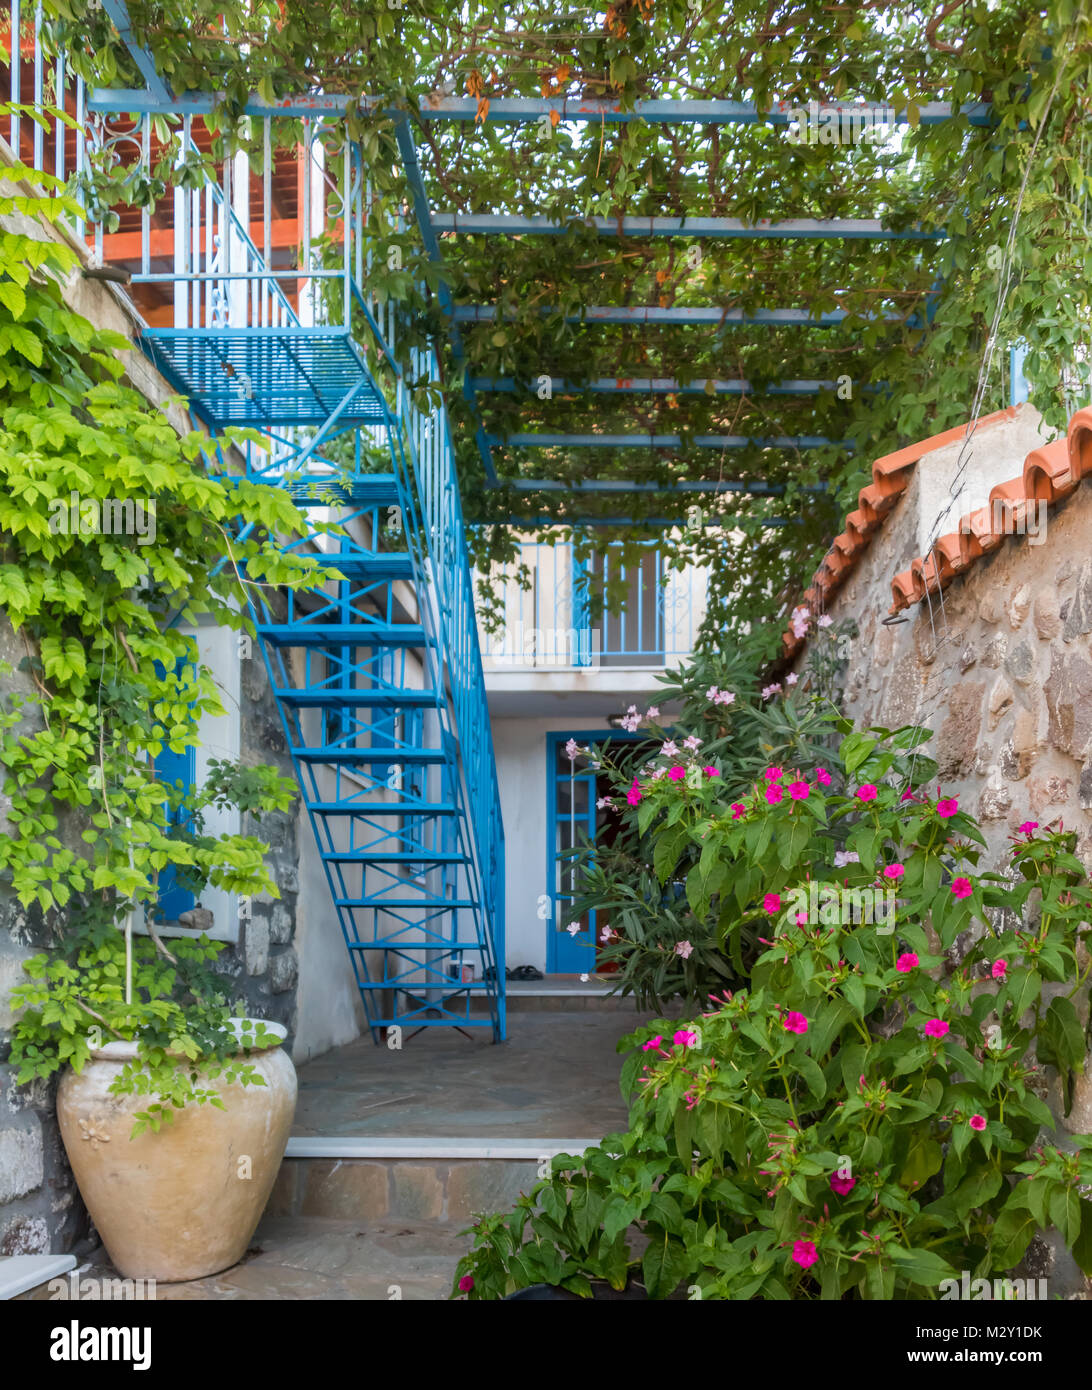 Flowers in a Greek Village Garden with flower pots, trellis and stairs Stock Photo